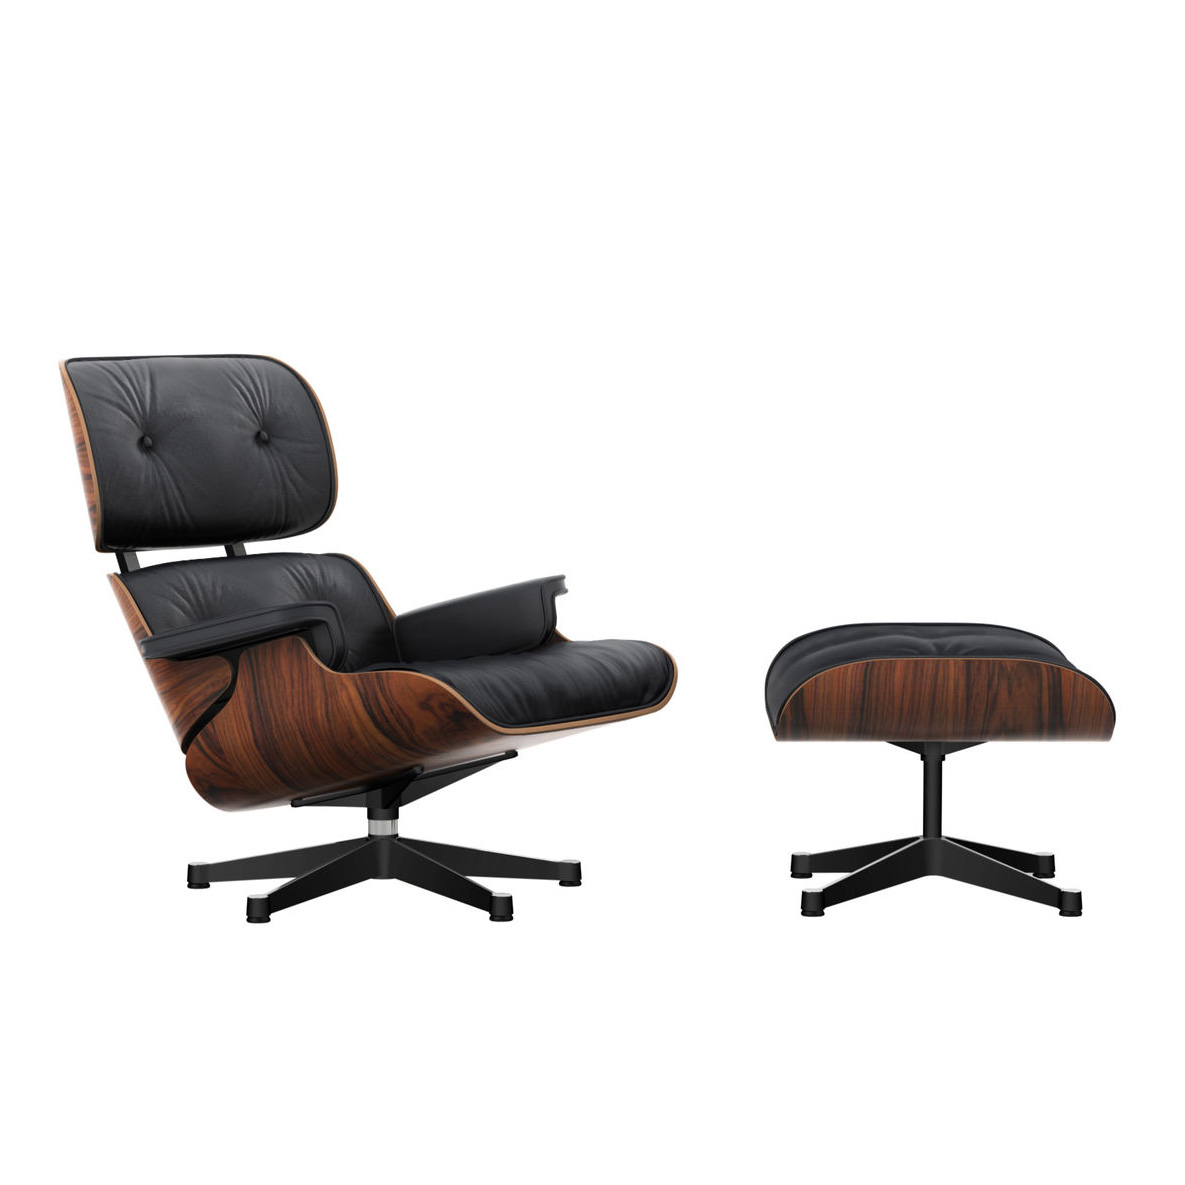 Eames Lounge Chair m/Ottoman Nero/Palisander/Polished/Sides Black